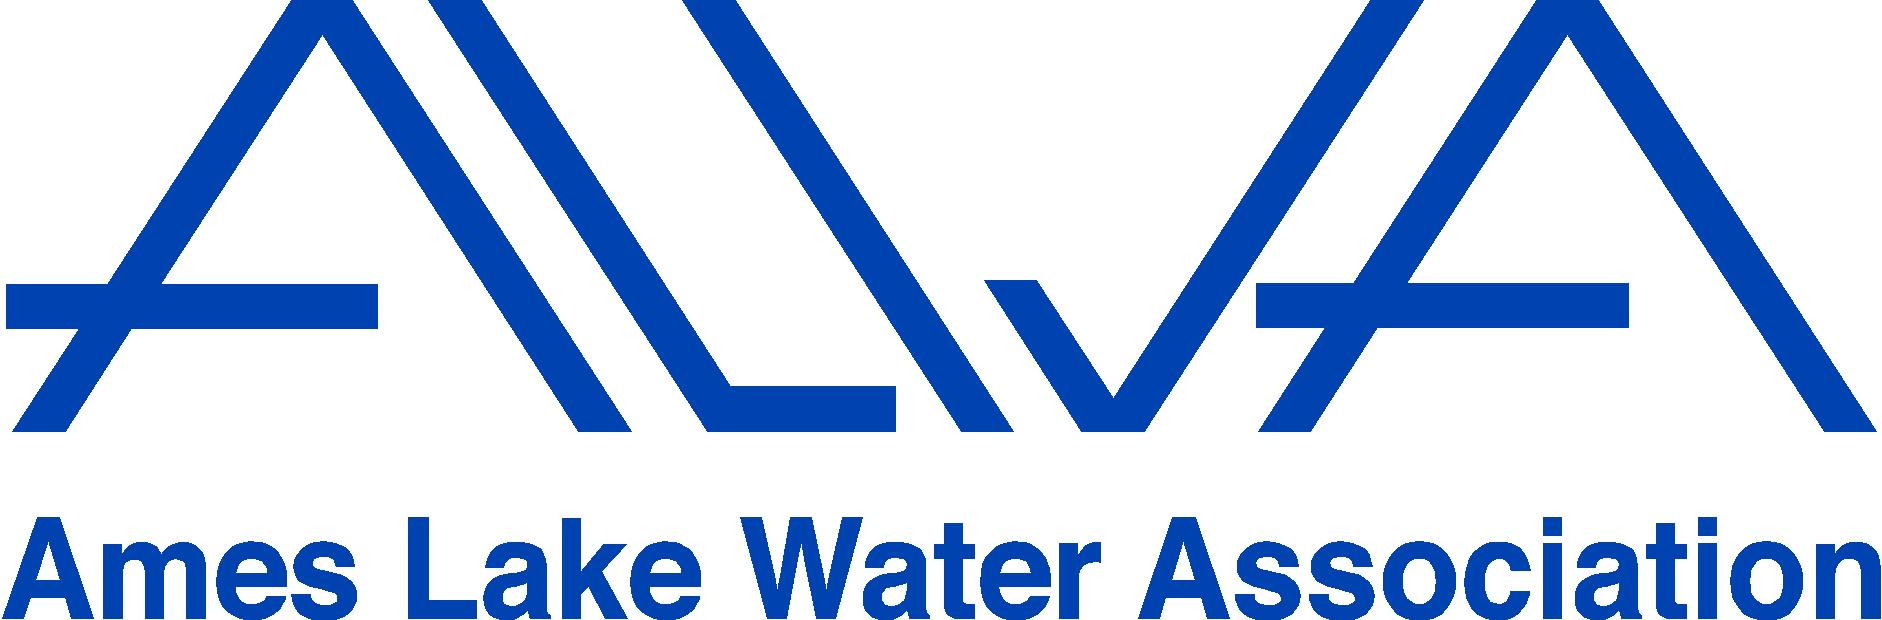 Description: Description: Ames Lake Water Association - A Consumer-owned Cooperative in Washington State